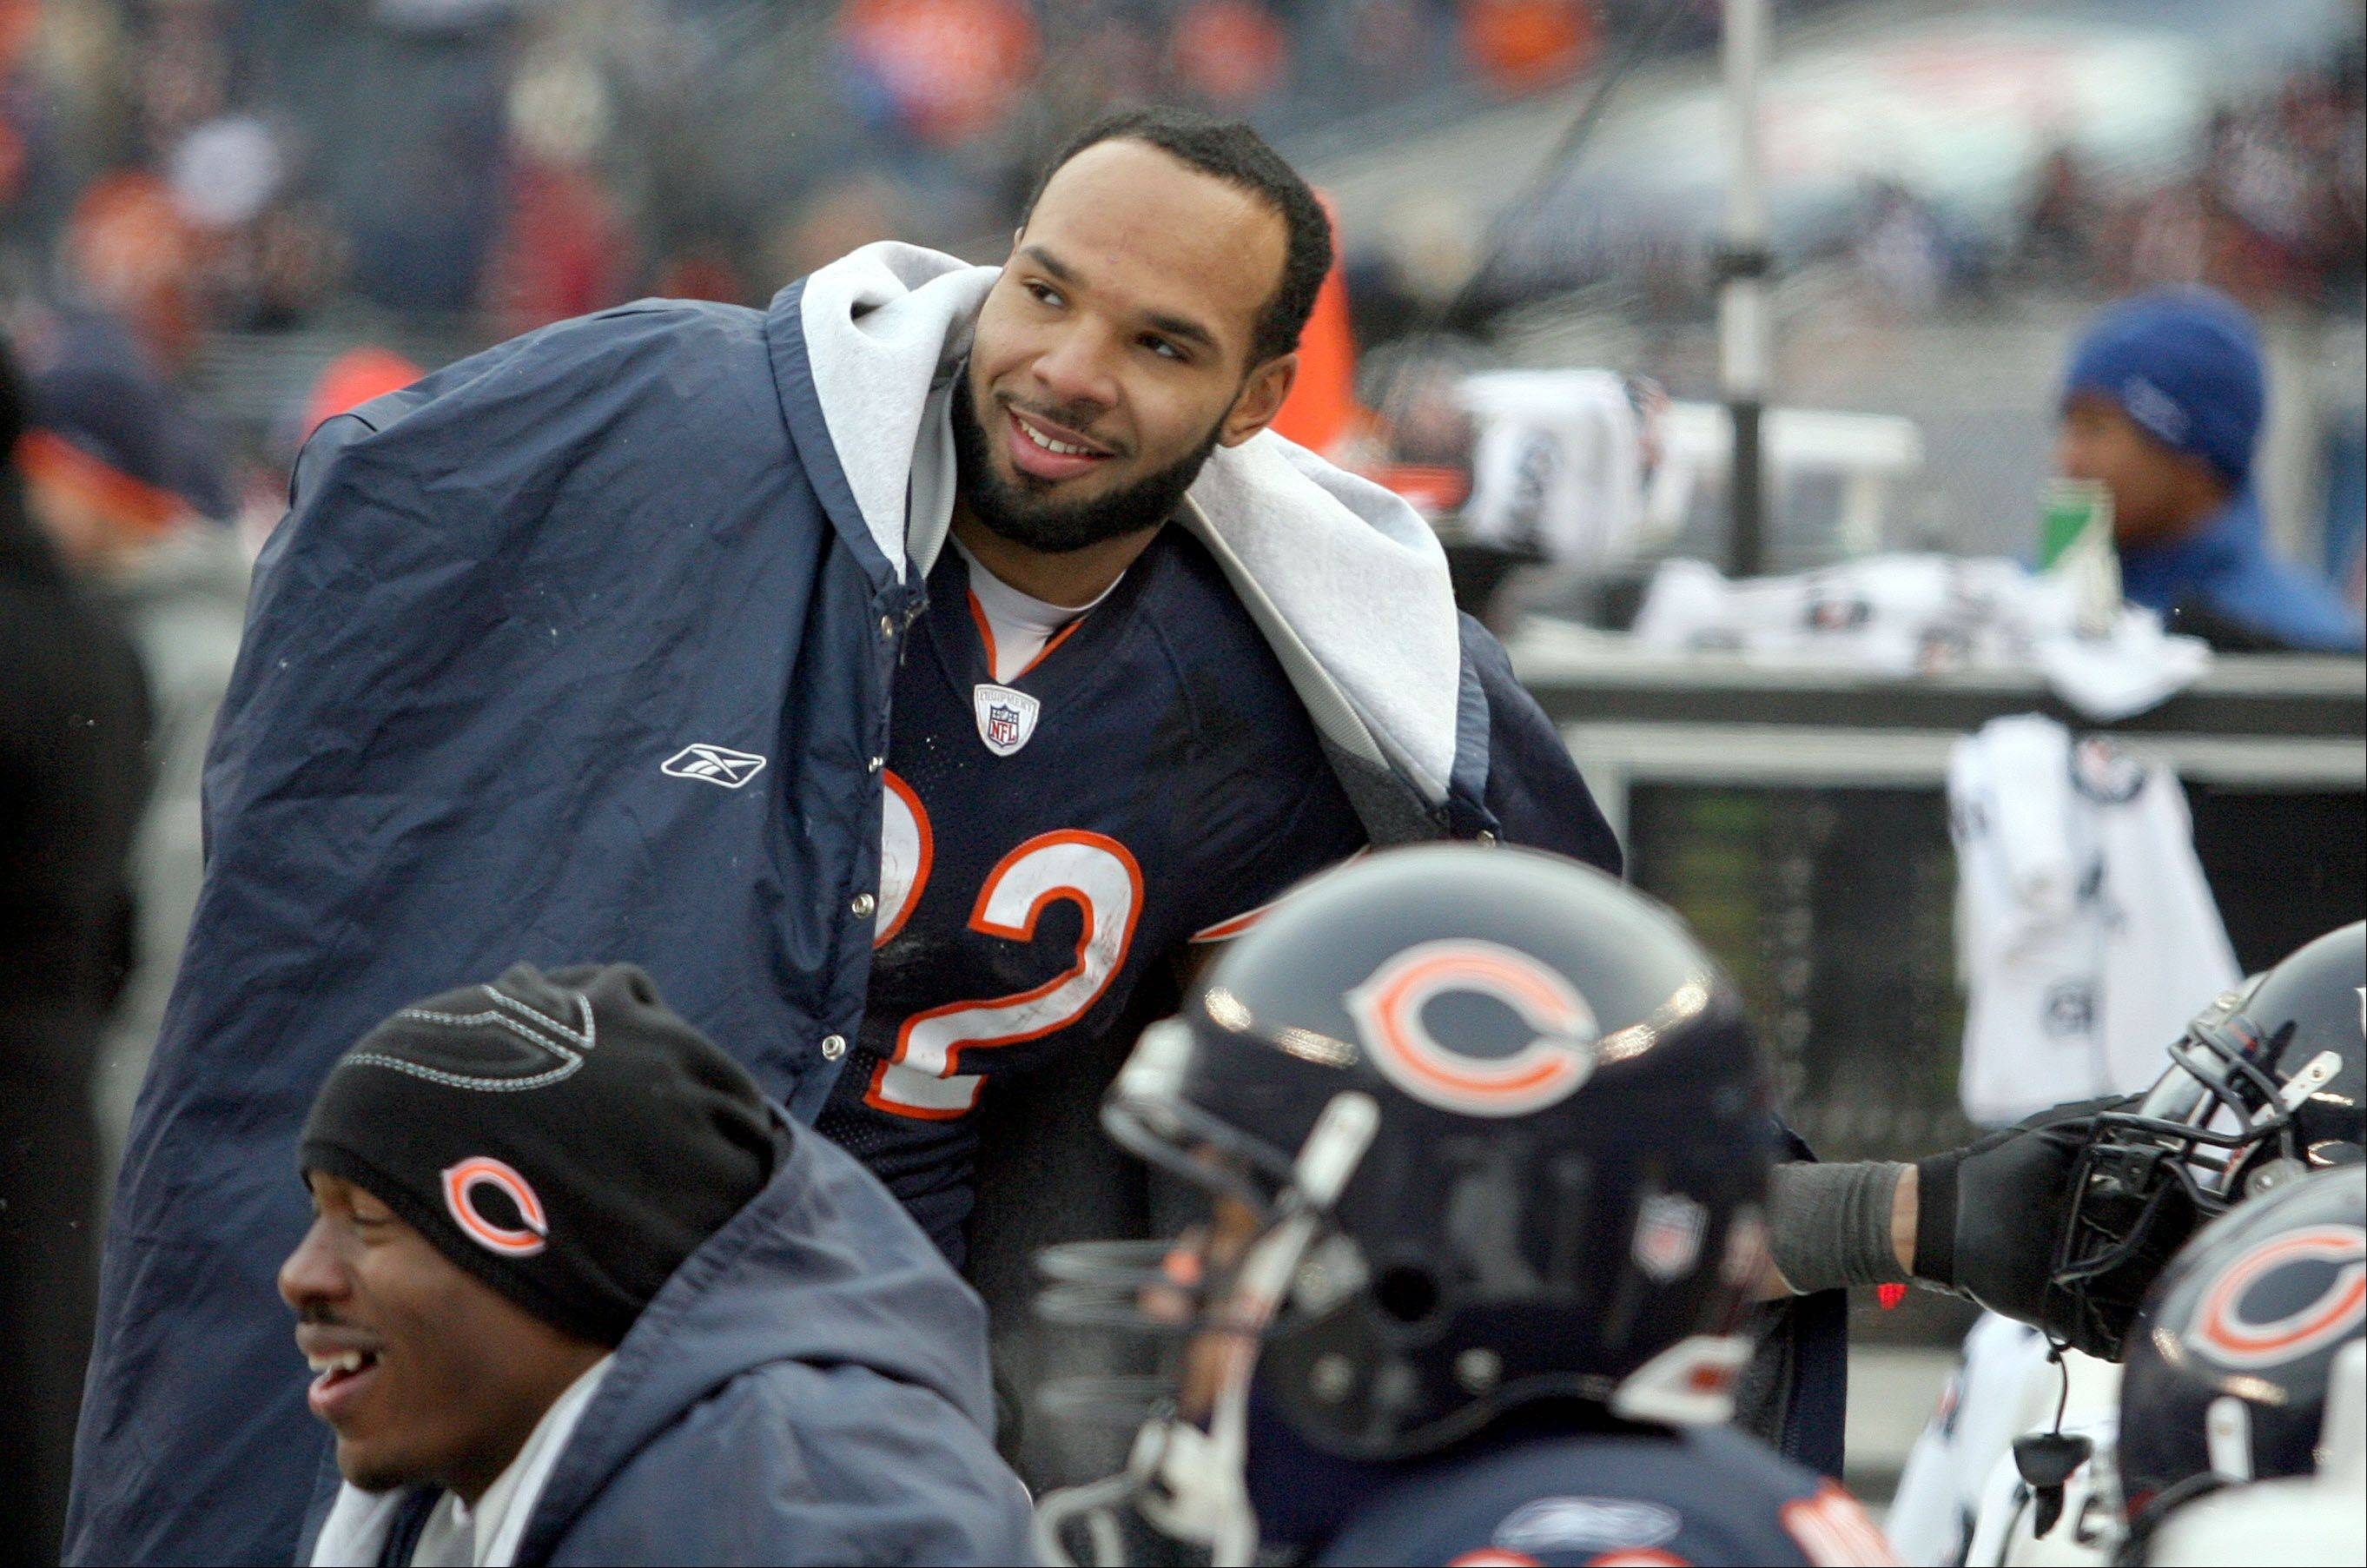 Bears running back Matt Forte was all smiles on the sidelines during the Bears' playoff win against Seattle last season, but he's not happy now that talks over a contract extension have been put on hold.